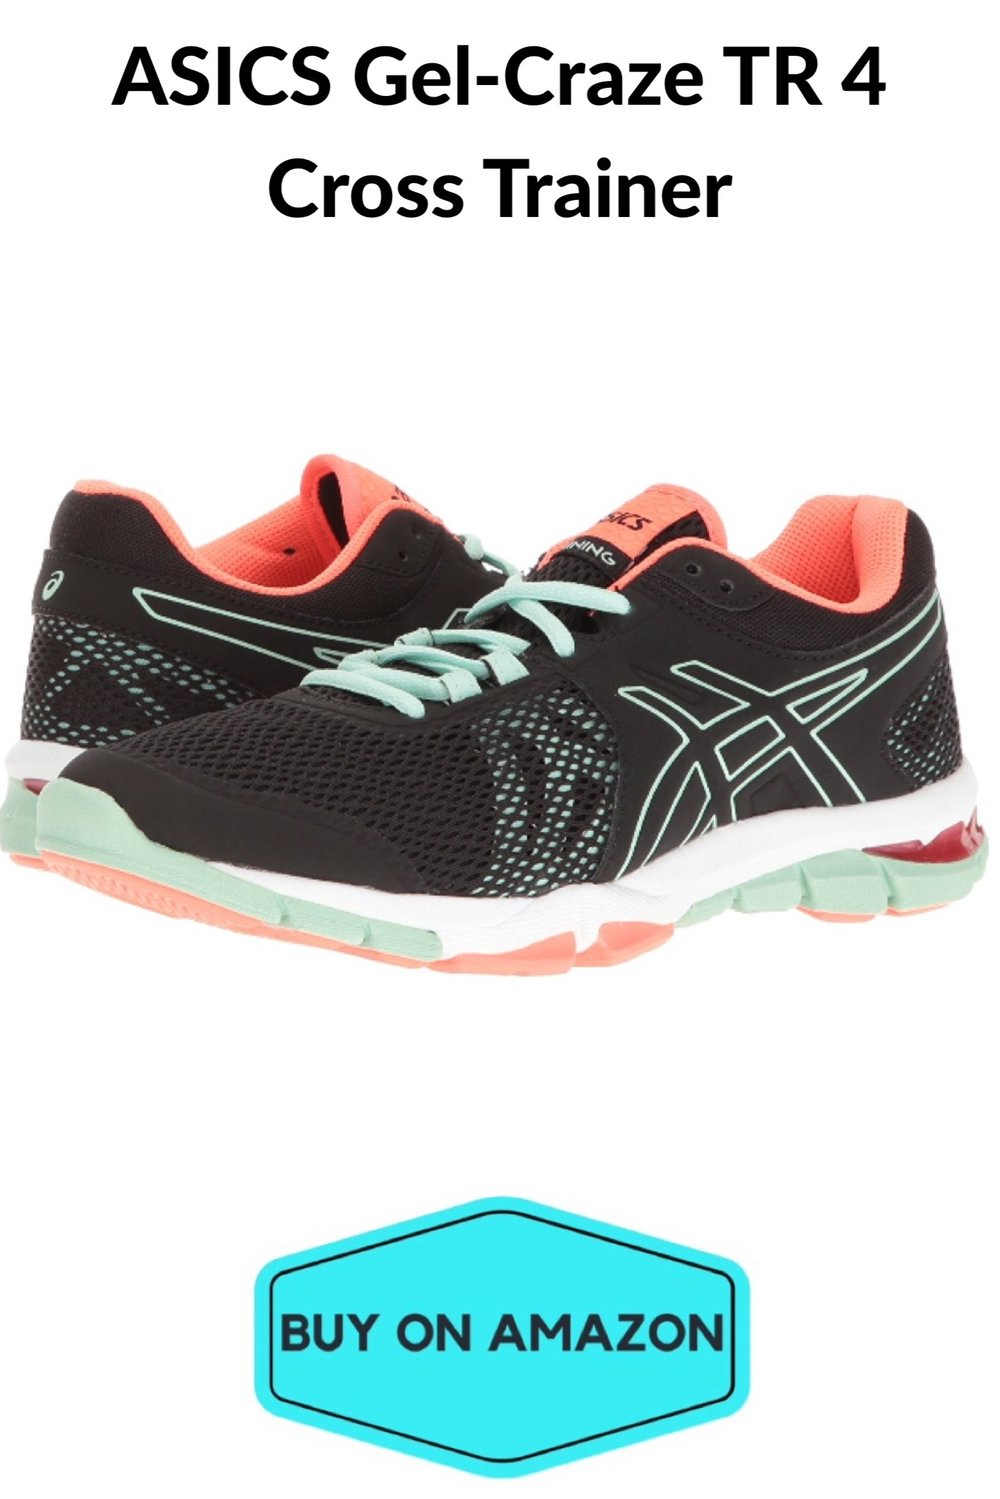 ASICS Gel-Craze TR 4 Women's Cross Trainer